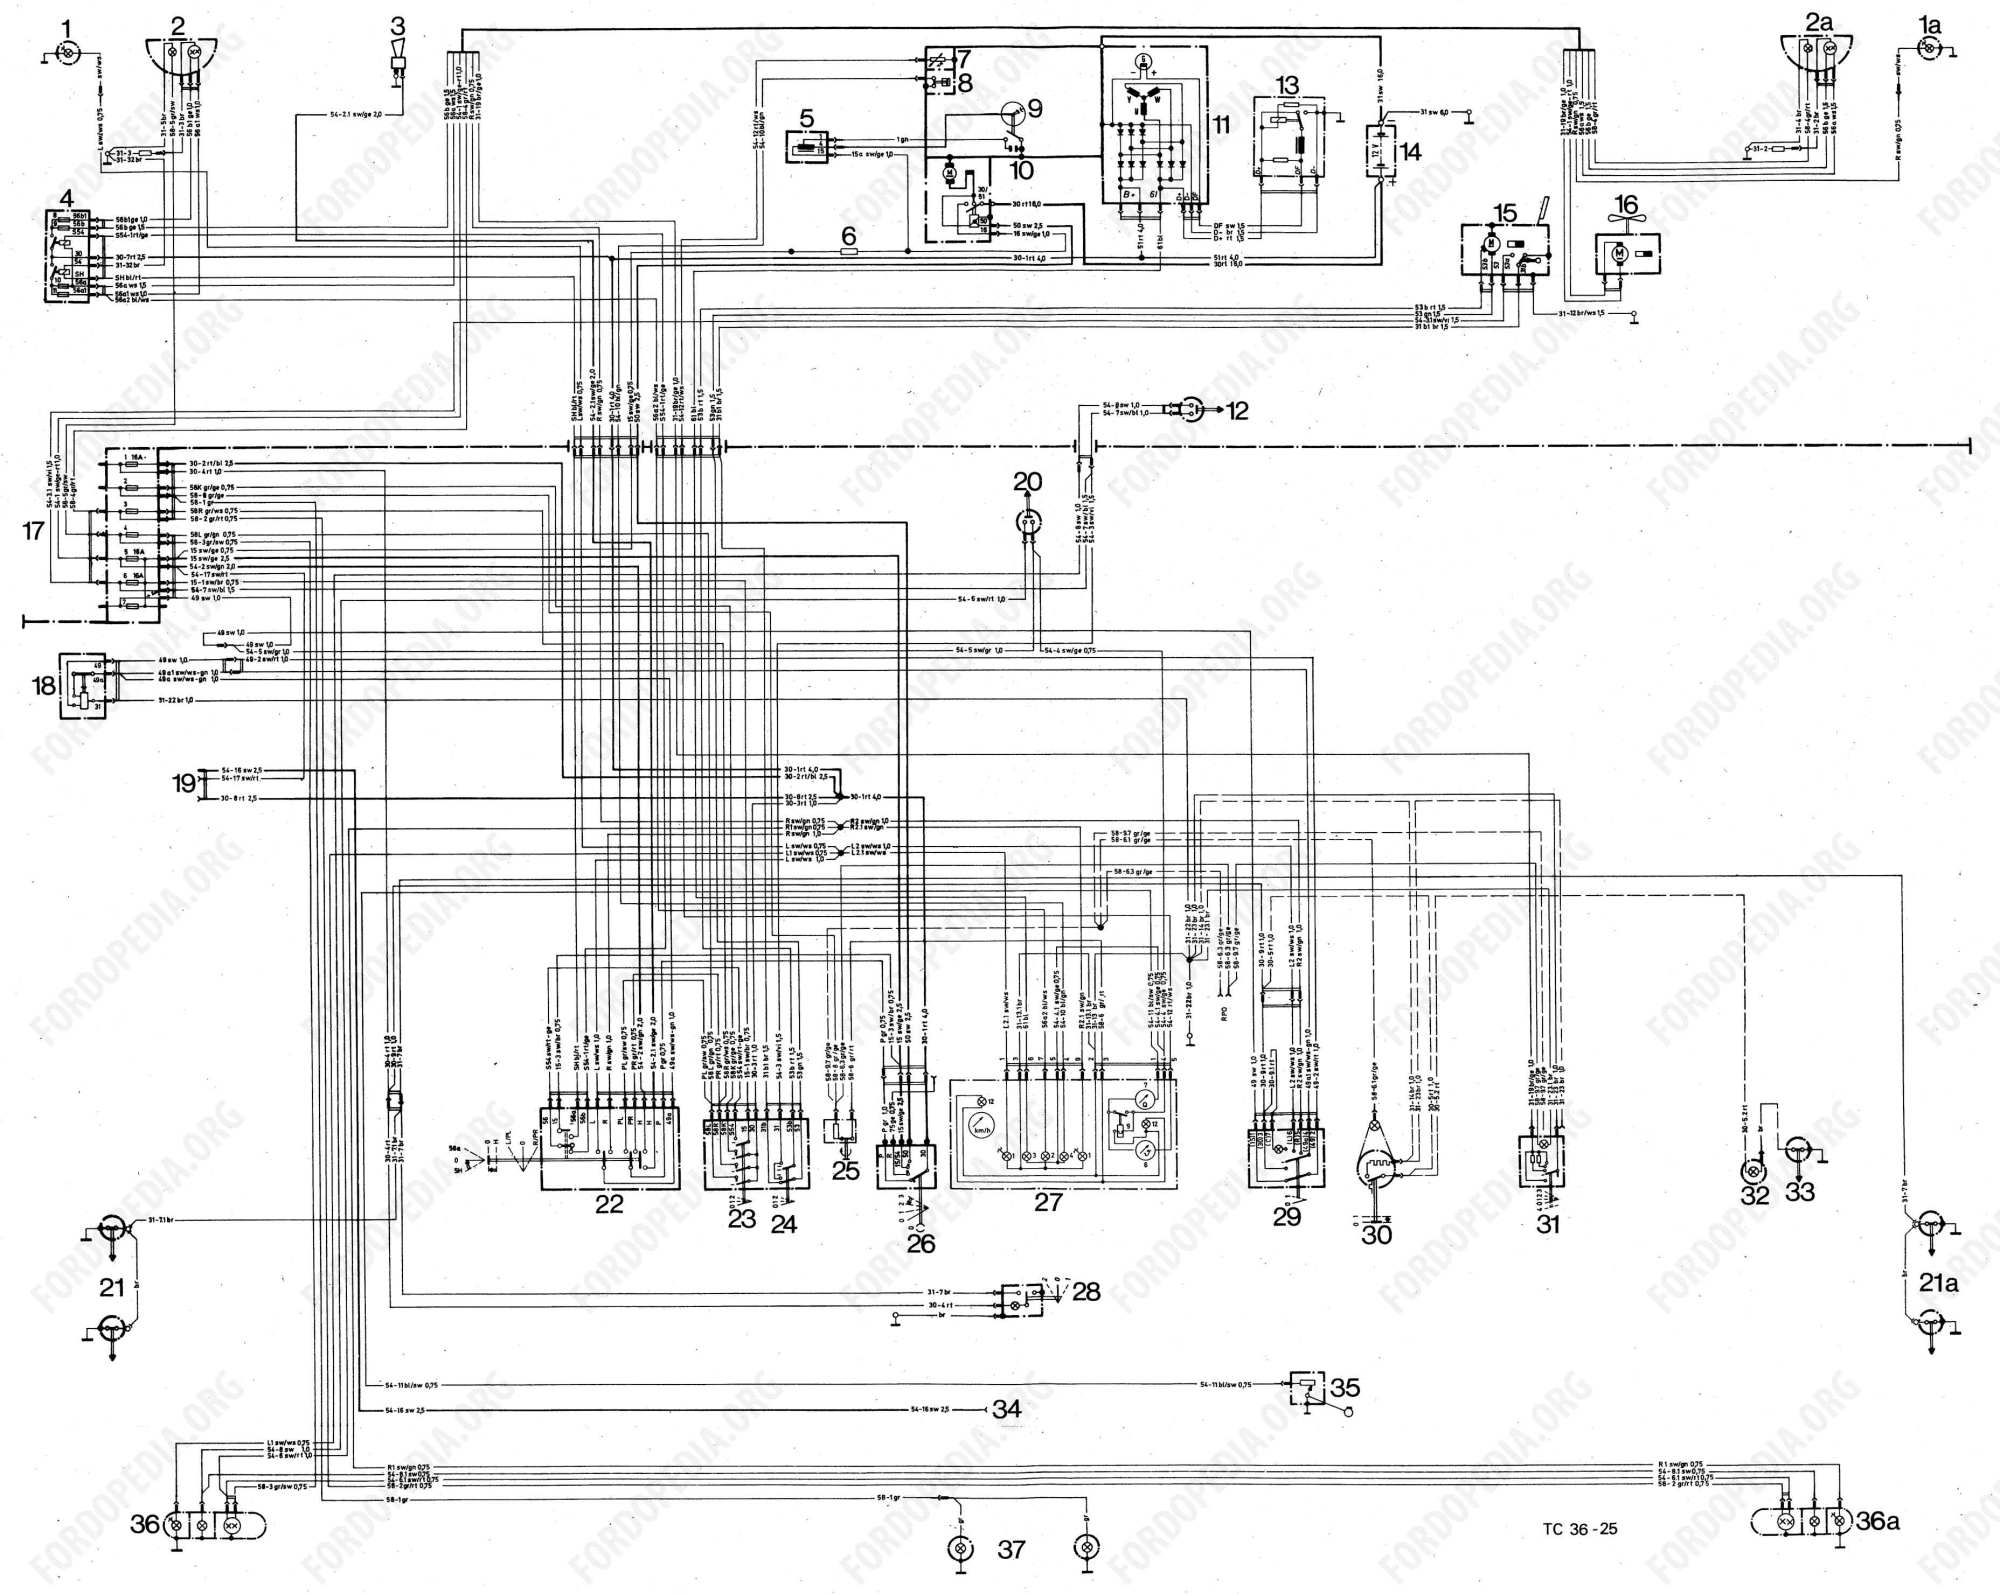 hight resolution of ford cortina wiring diagram wiring diagram sheet ford cortina engine diagram